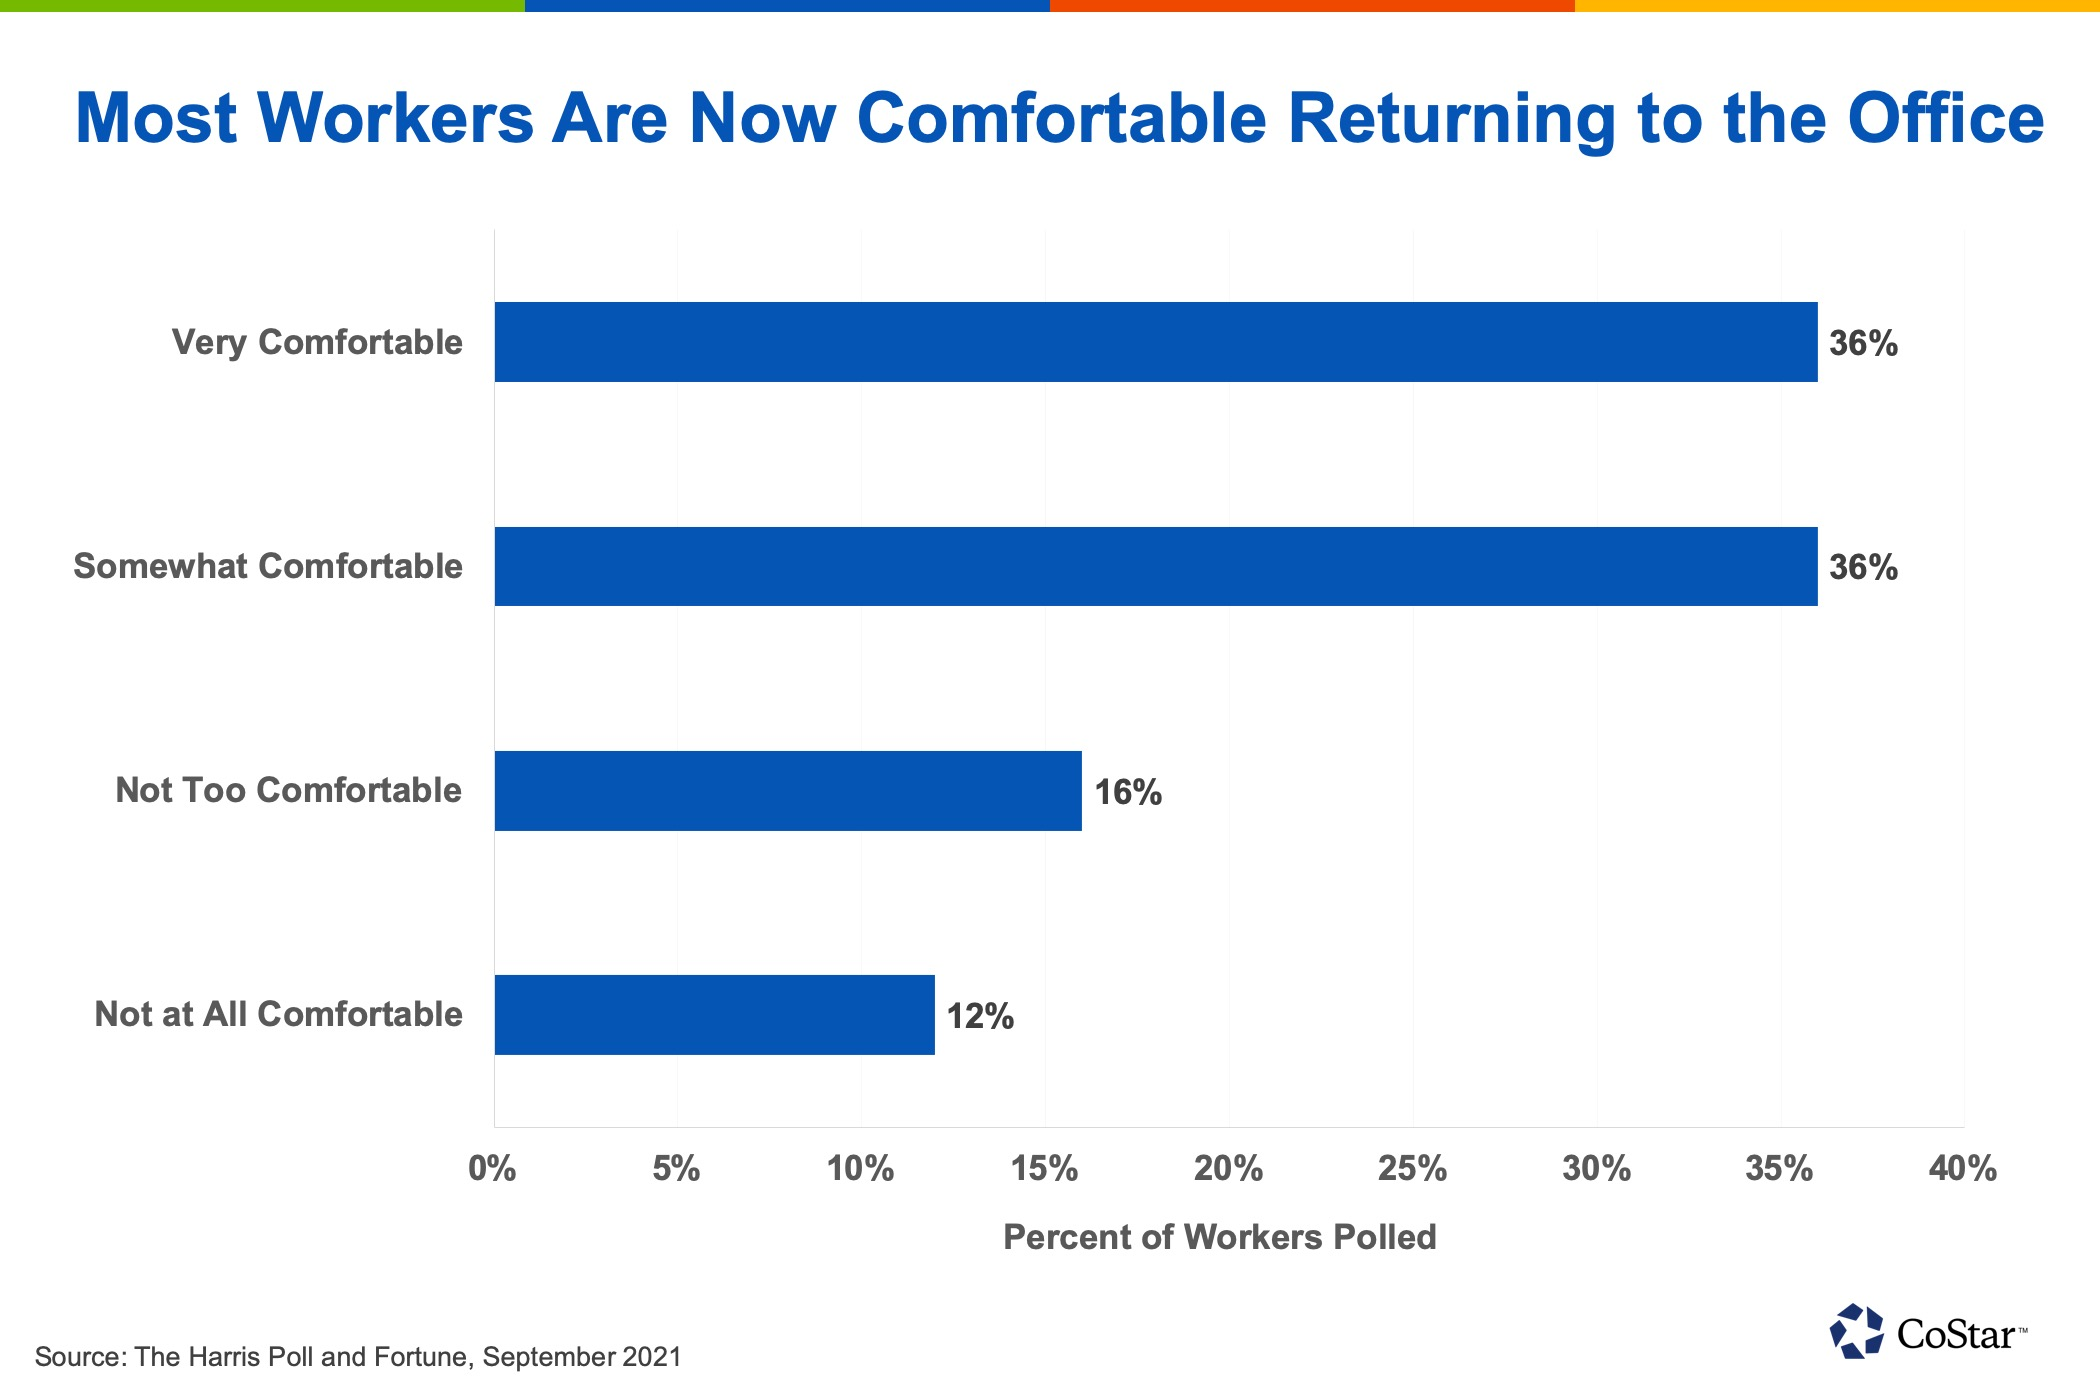 Data based on poll of 1,124 U.S. workers fielded in August 2021.